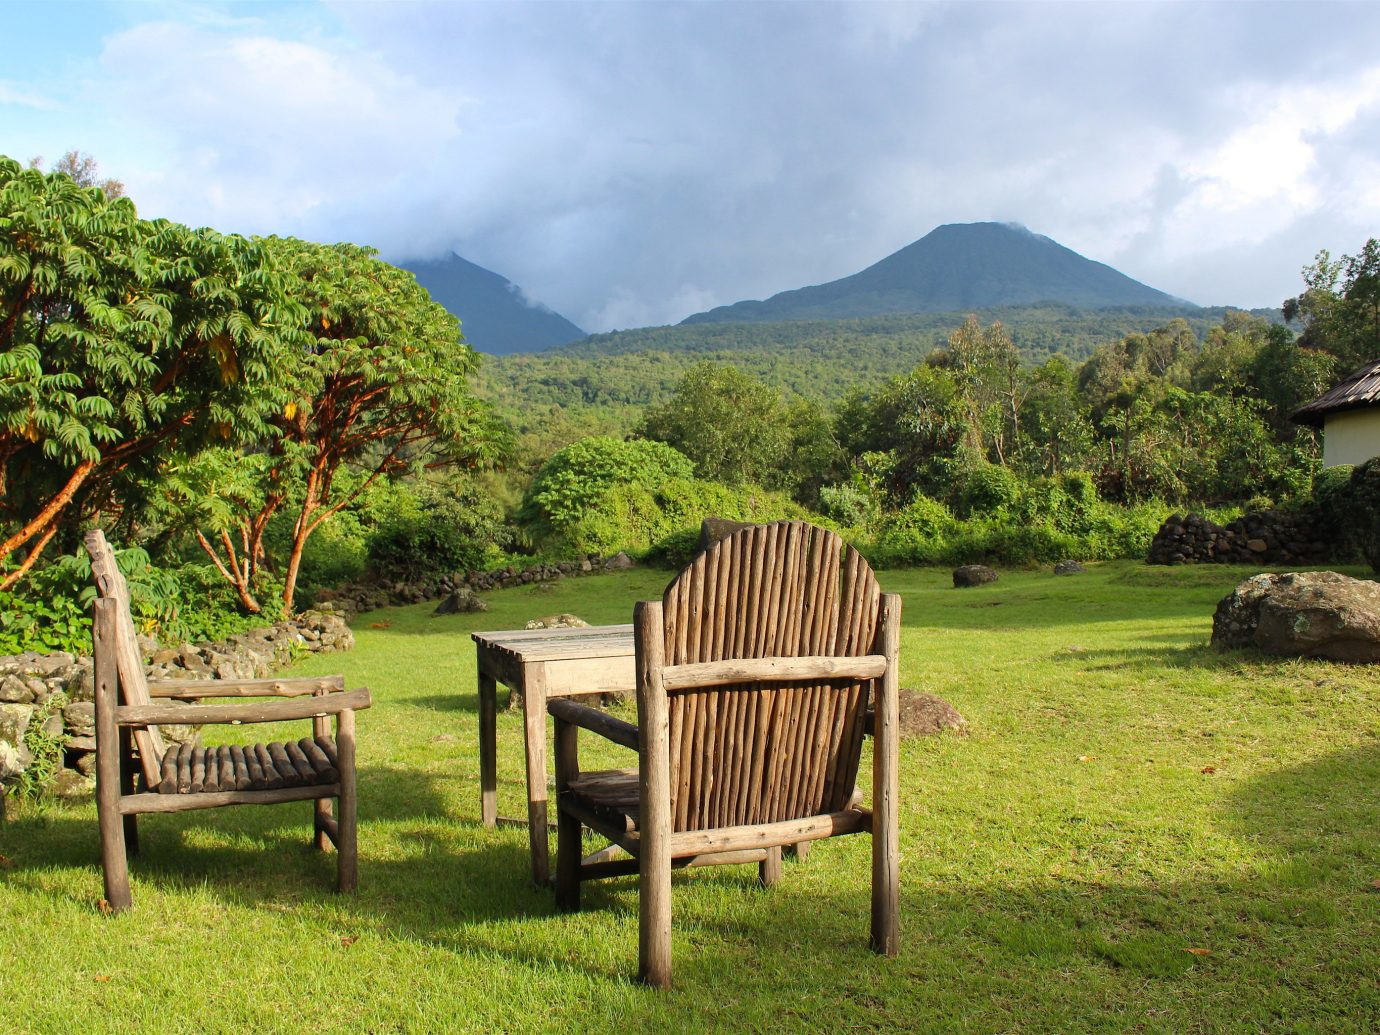 Adventure africa Off-the-beaten Path Trip Ideas grass outdoor sky mountain nature reserve property tree rural area wooden cottage real estate hill station landscape national park park hill plant Village hut land lot estate plantation leisure Jungle field cloud meadow lush